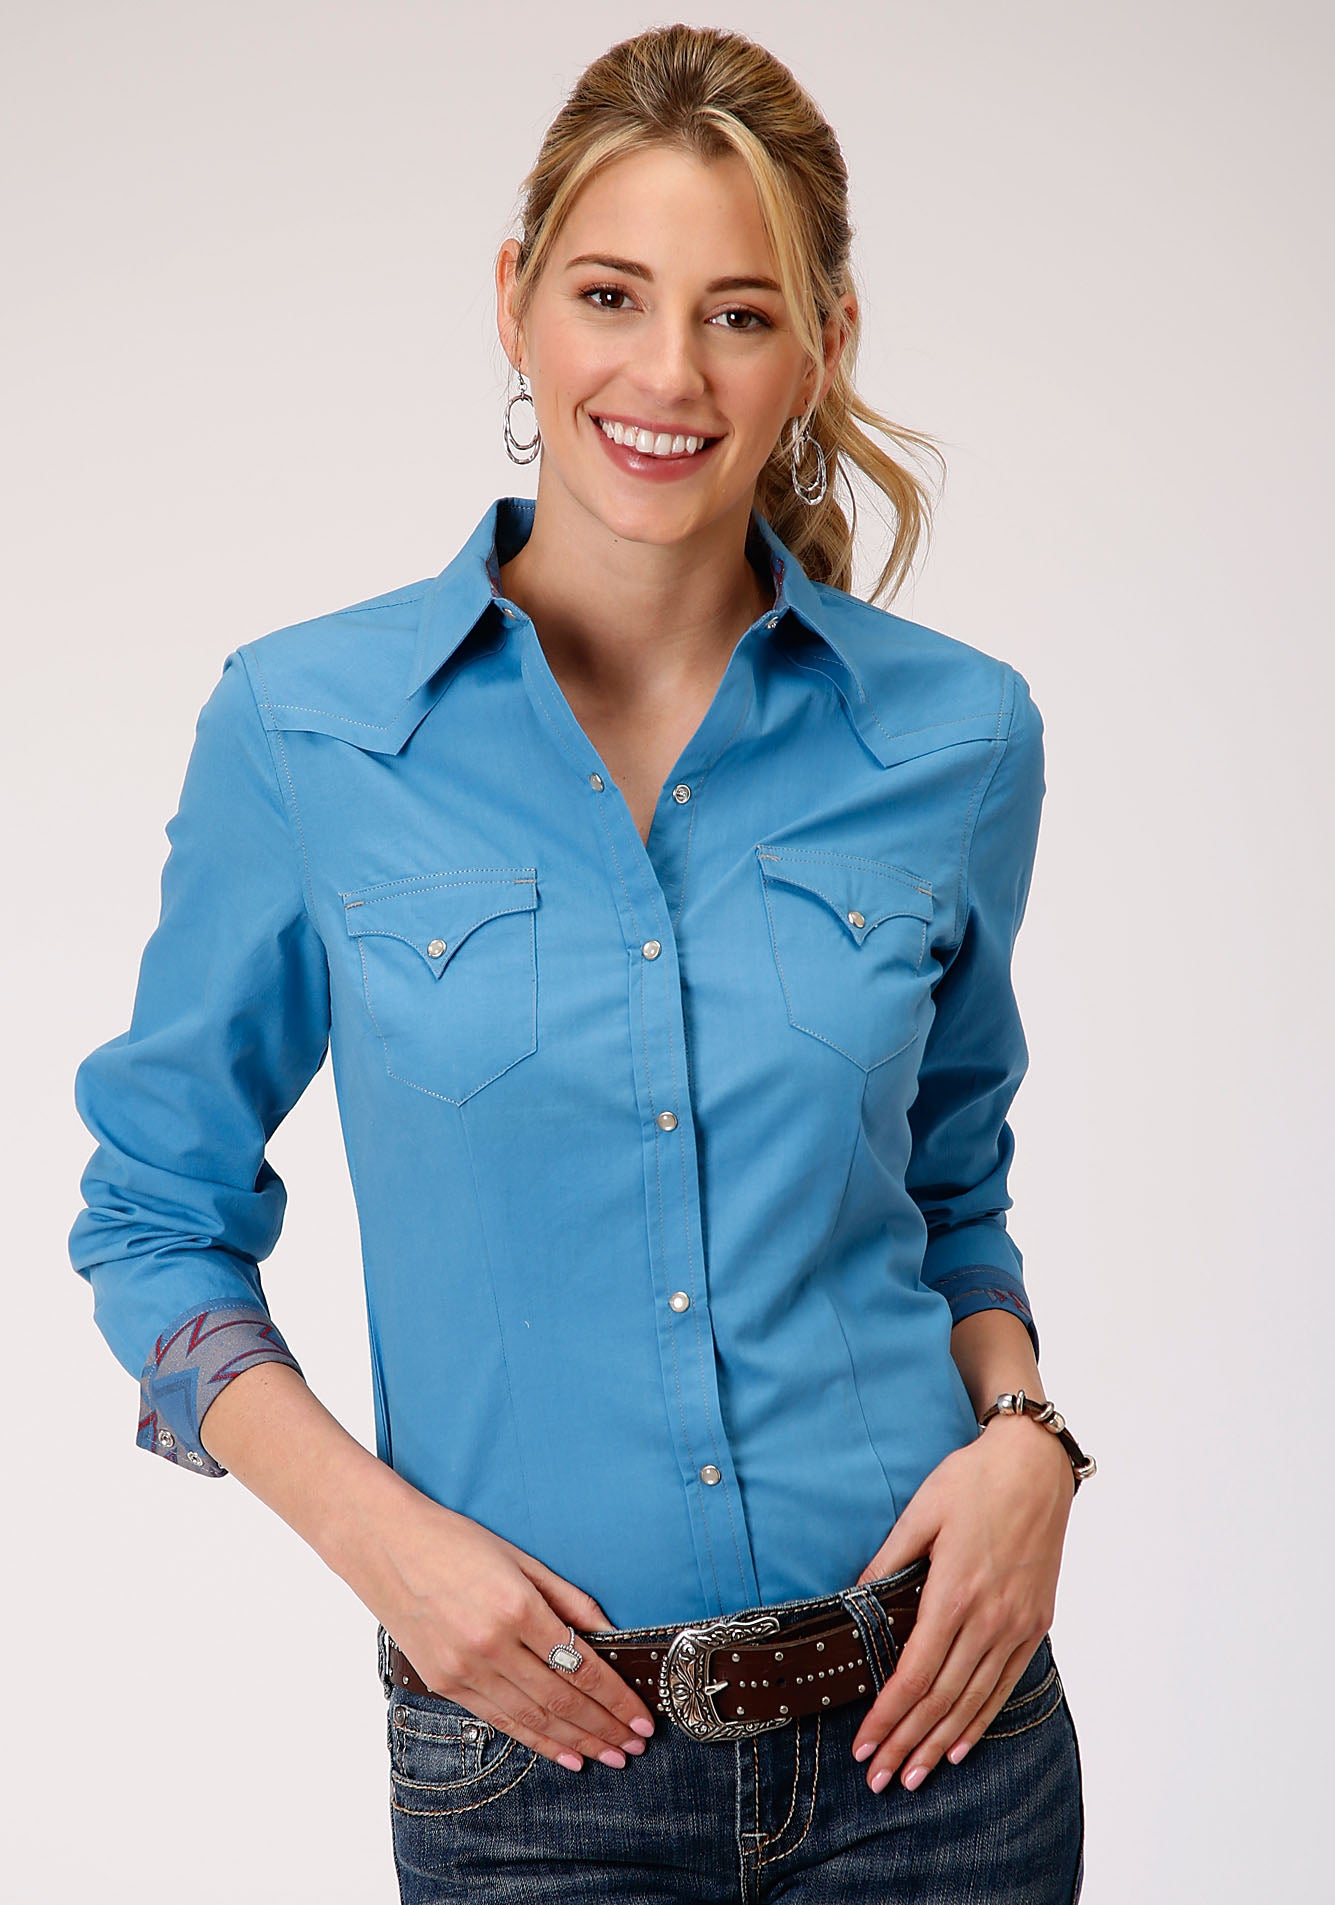 ROPER WOMENS BLUE 00106 SOLID POPLIN - BLUE WEST MADE COLLECTION LONG SLEEVE